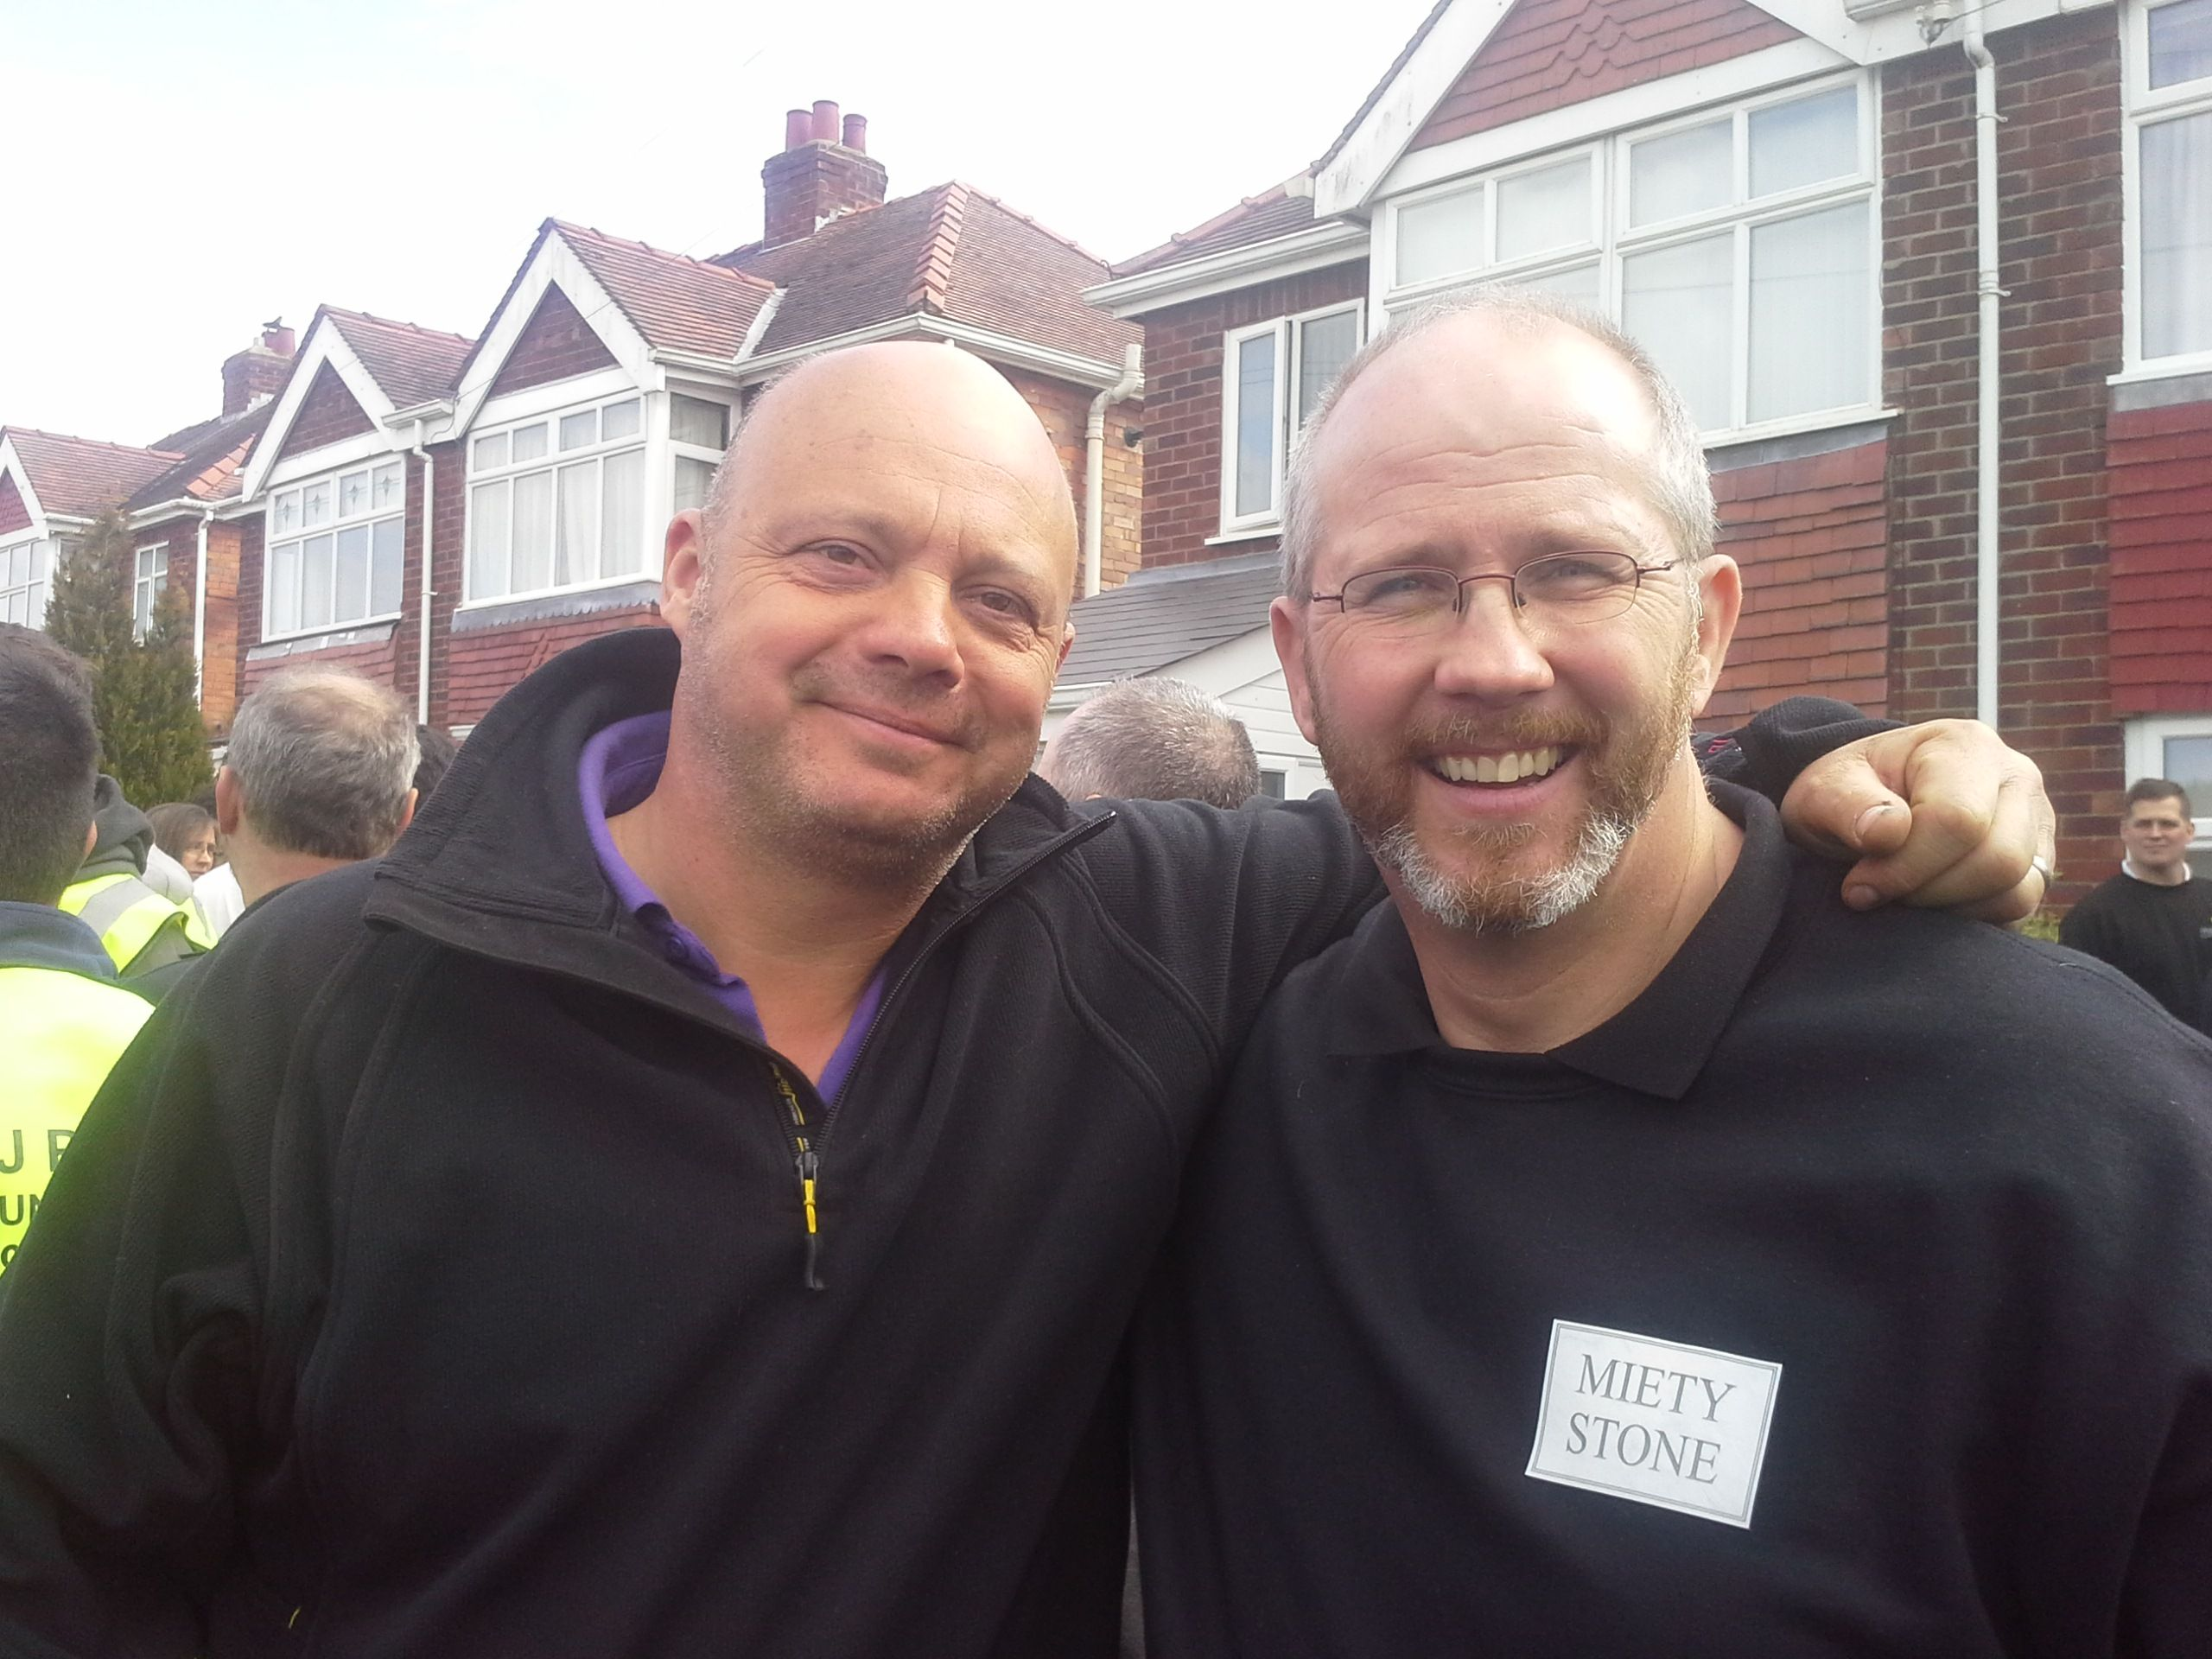 Back on the 29th March an episode of DIY SOS aired. The